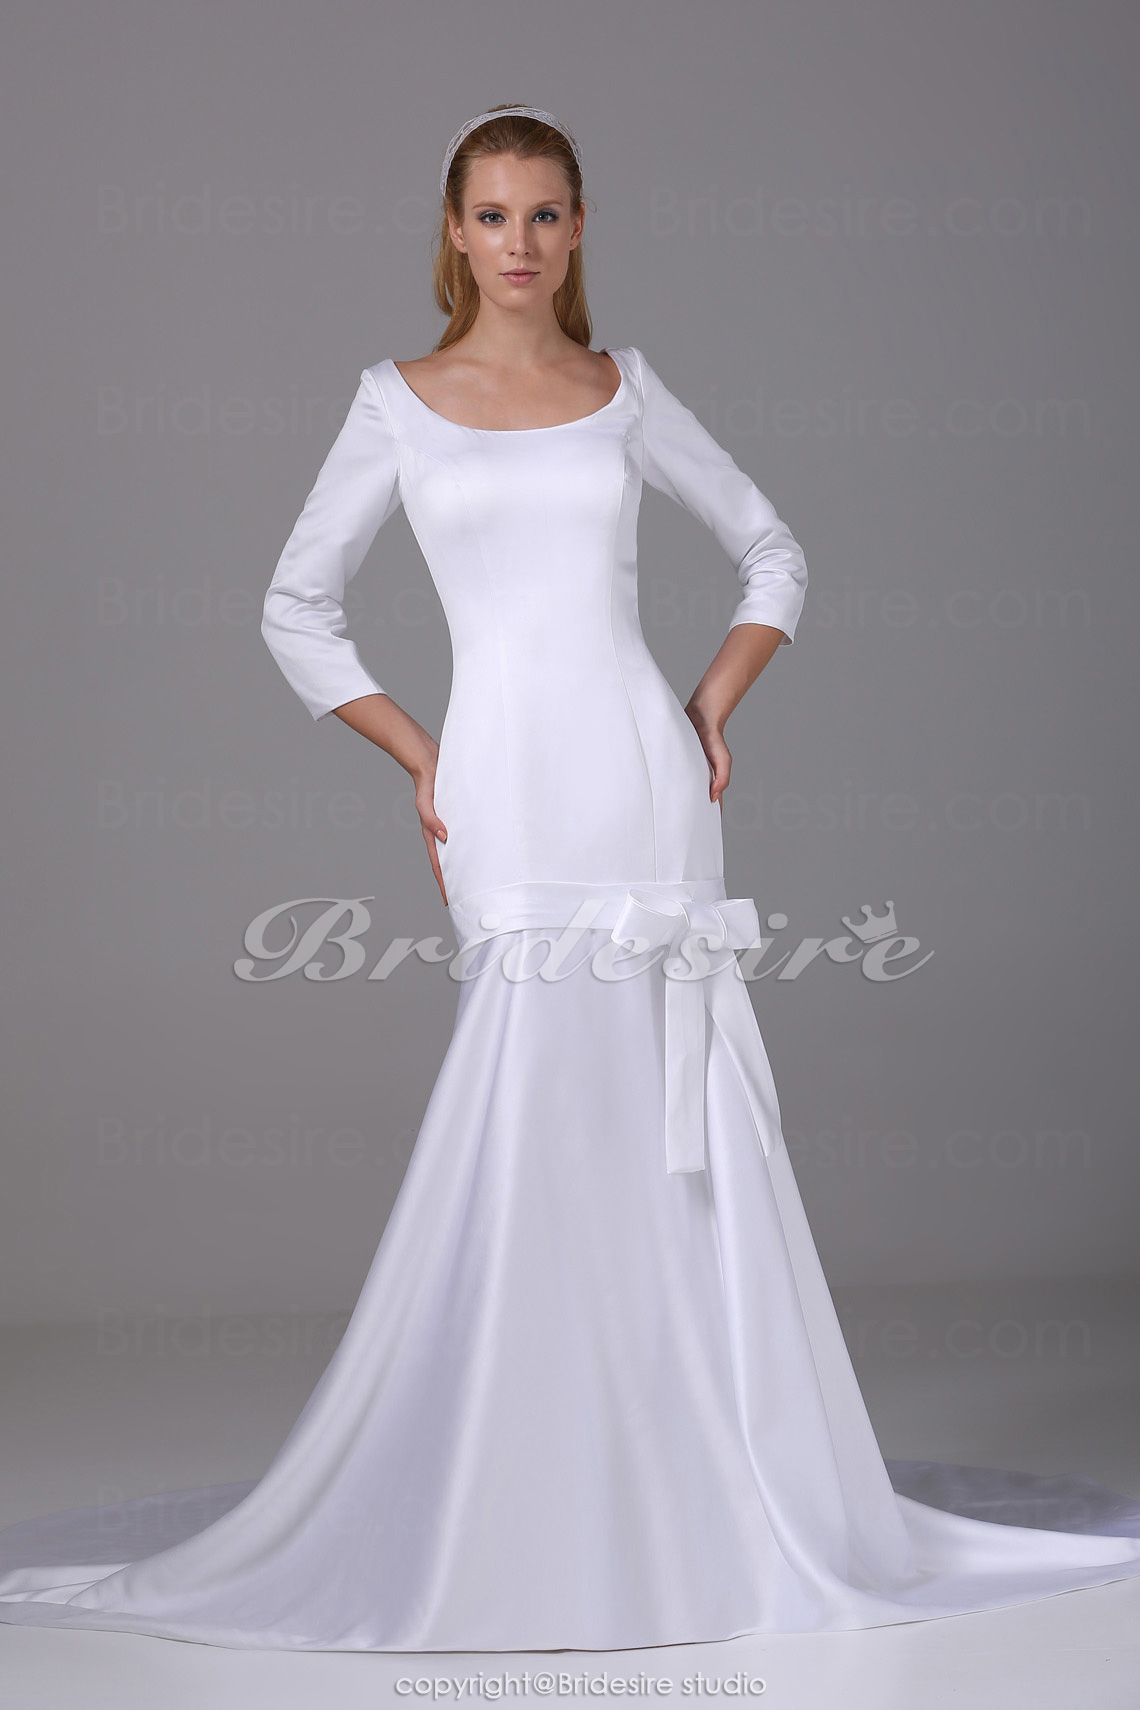 Trumpet/Mermaid Scoop Chapel Train 3/4 Length Sleeve Satin Wedding Dress